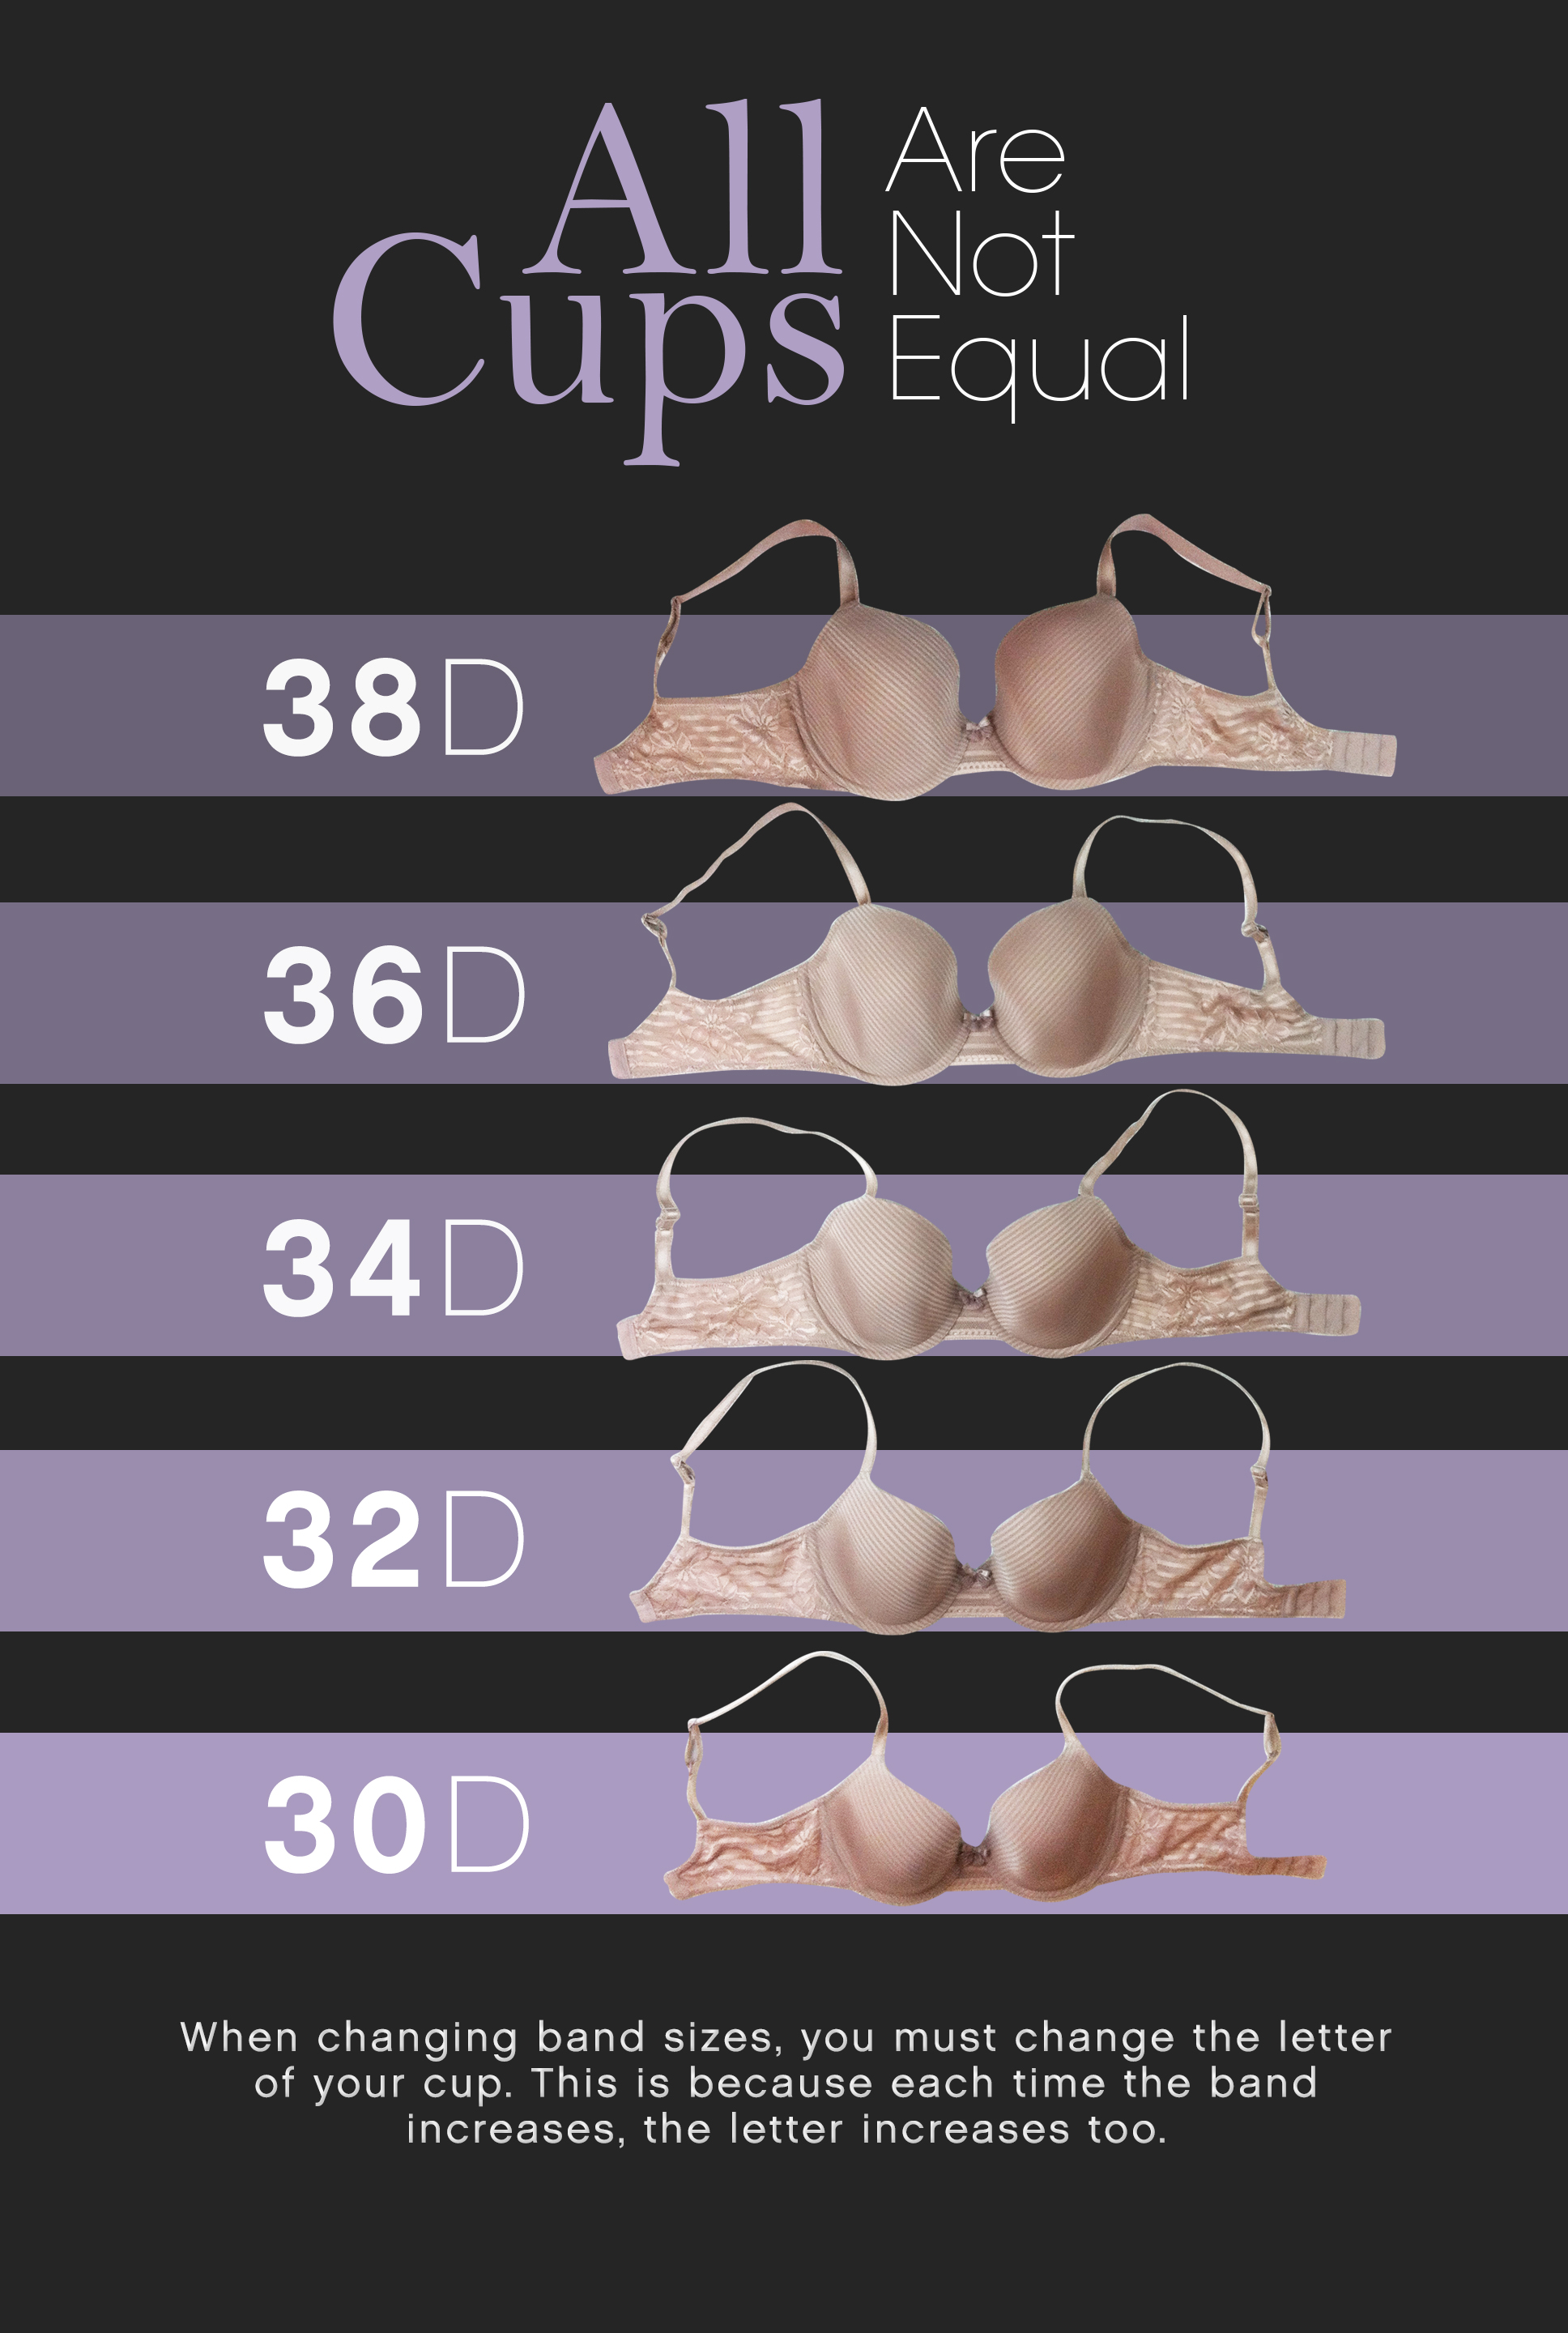 543ddf6b8f6 Understanding cup sizes will help you find the right bra fit.  bra sizing poster